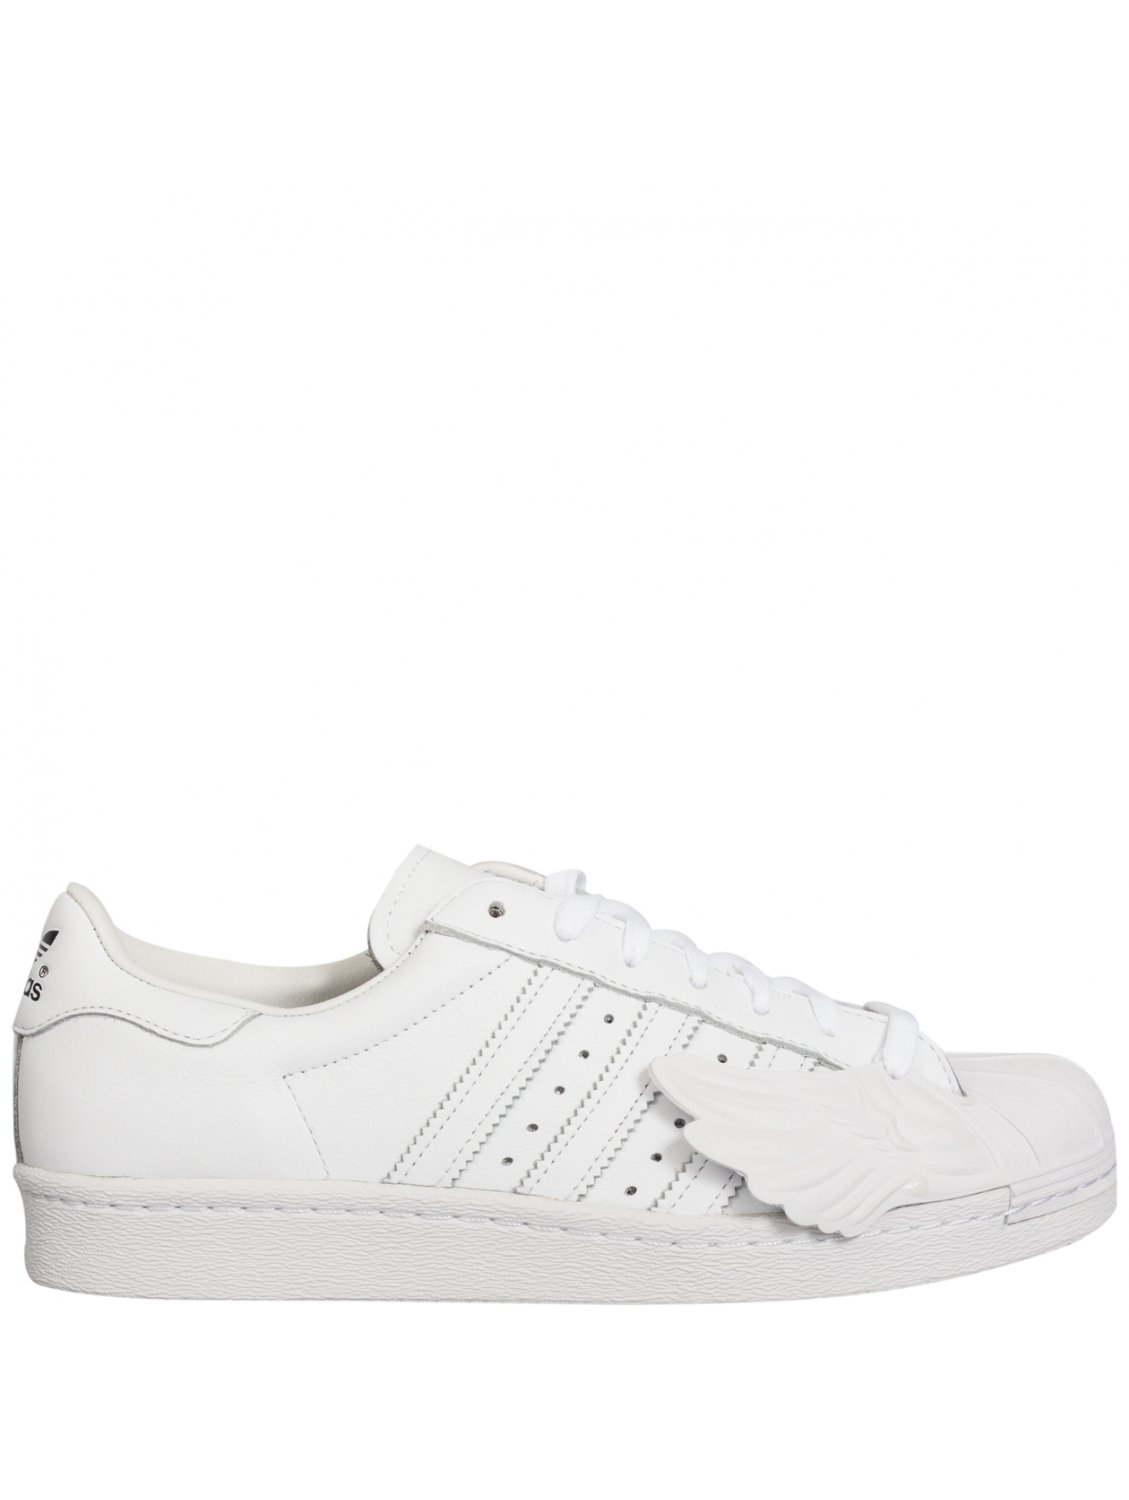 968384b31caf Jeremy Scott for adidas Superstar Low Wings White in White for Men ...